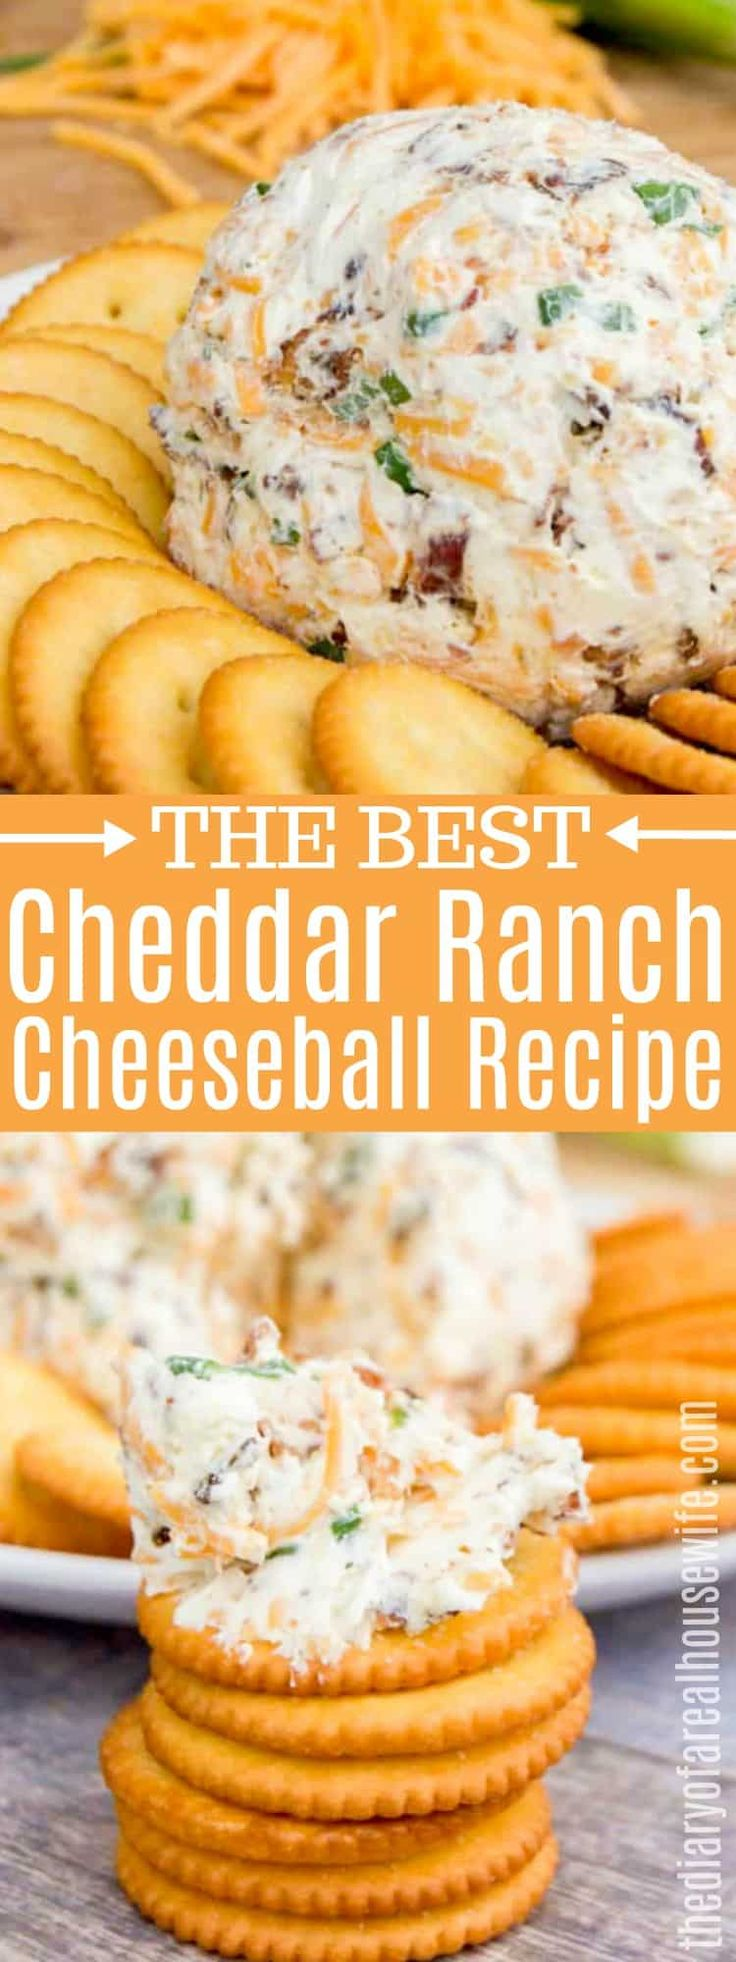 THE BEST Cheddar Ranch Cheeseball! The perfect appetizer. #cheeseball